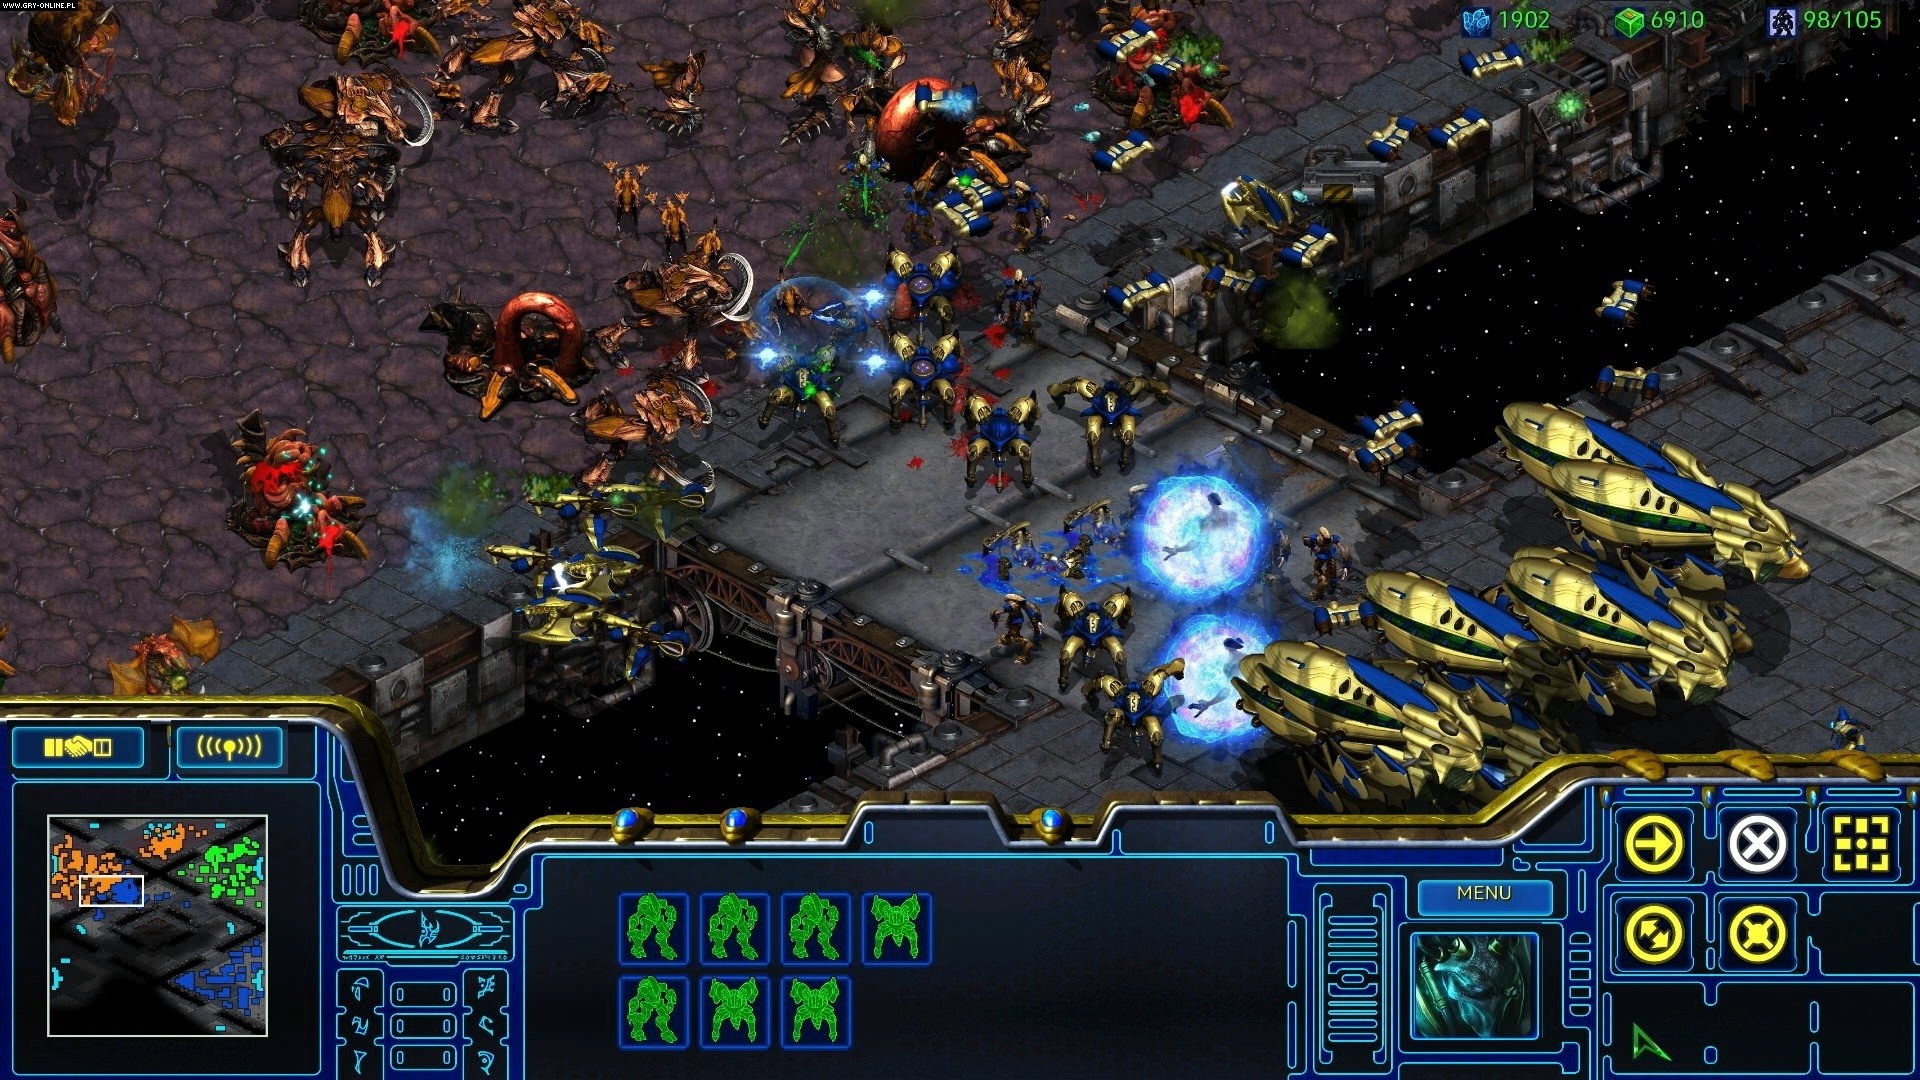 StarCraft: Remastered PC Games Image 3/15, Blizzard Entertainment